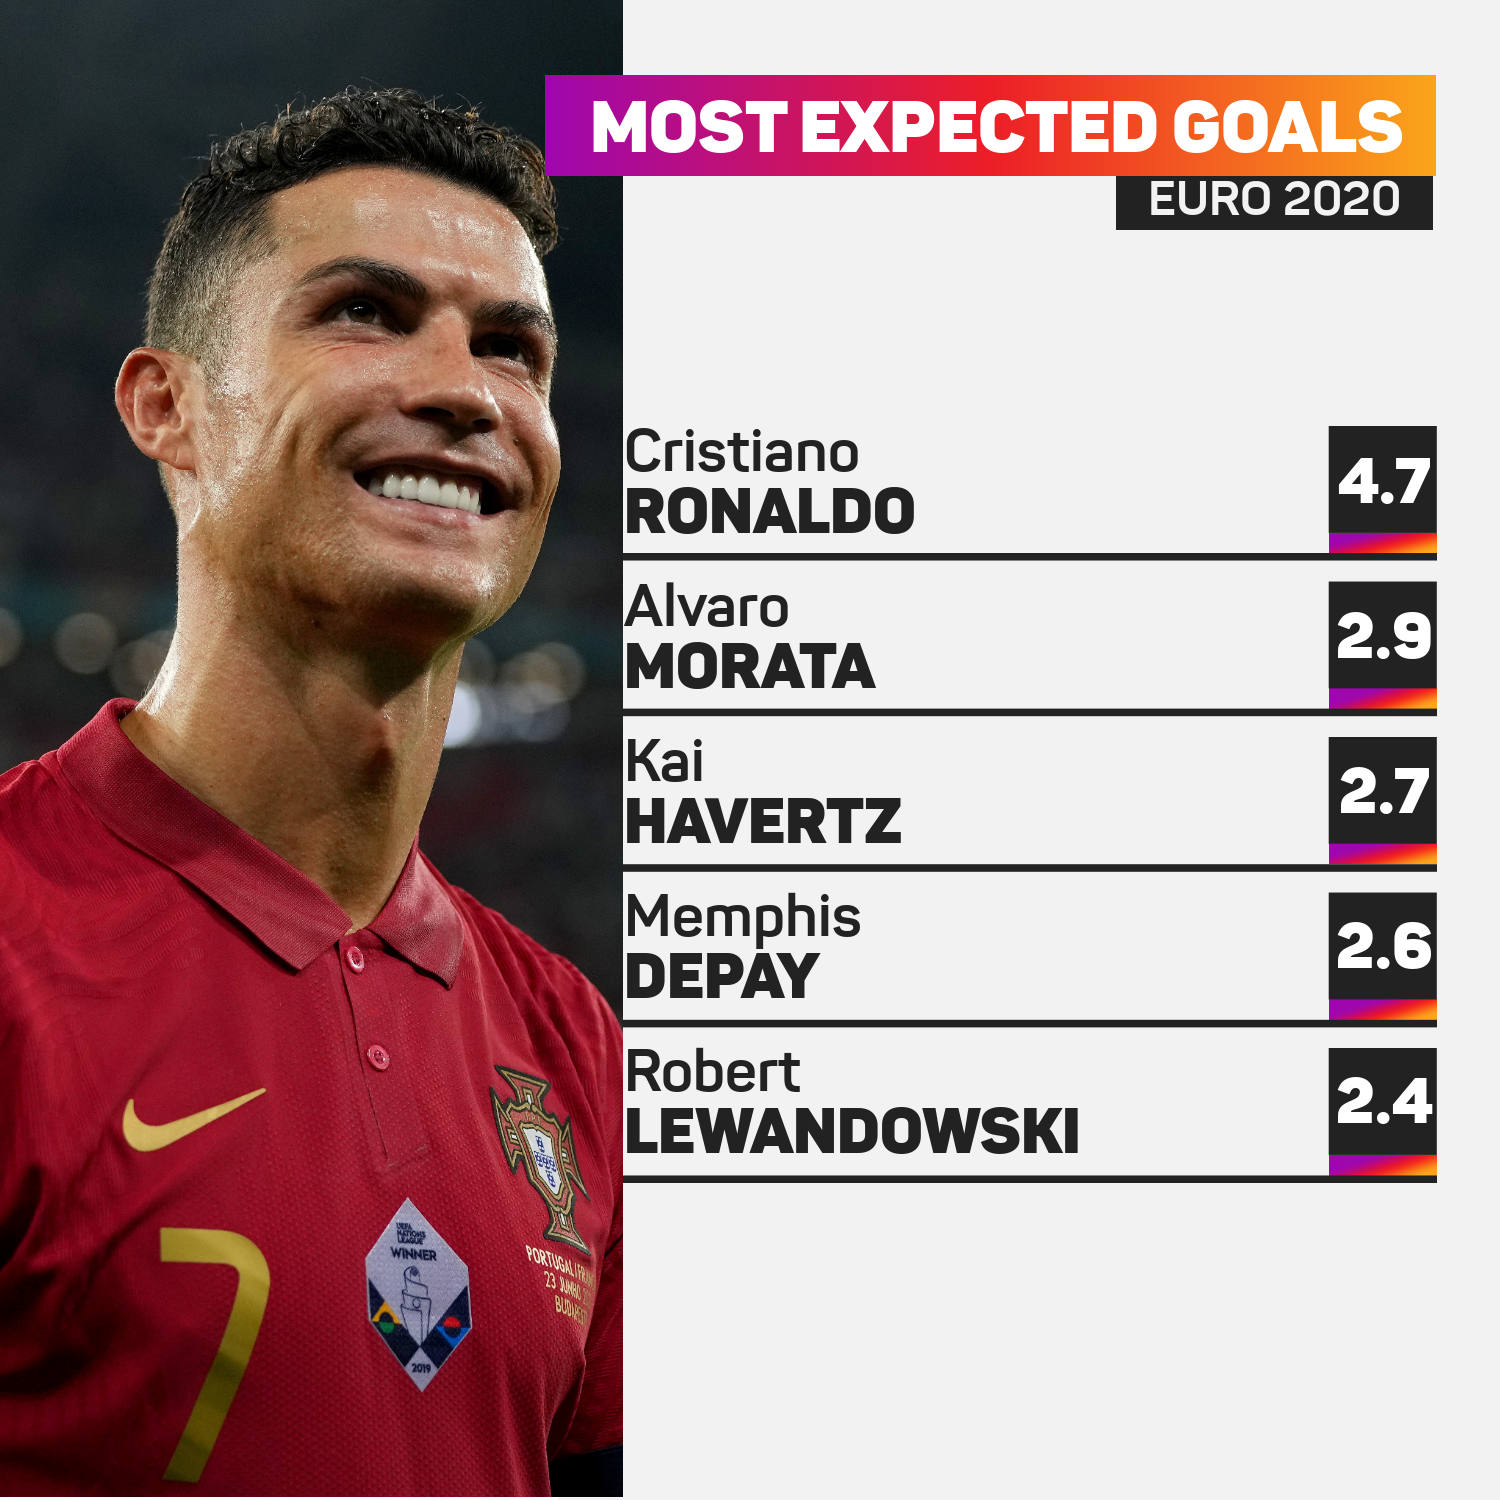 Expected goals at Euro 2020